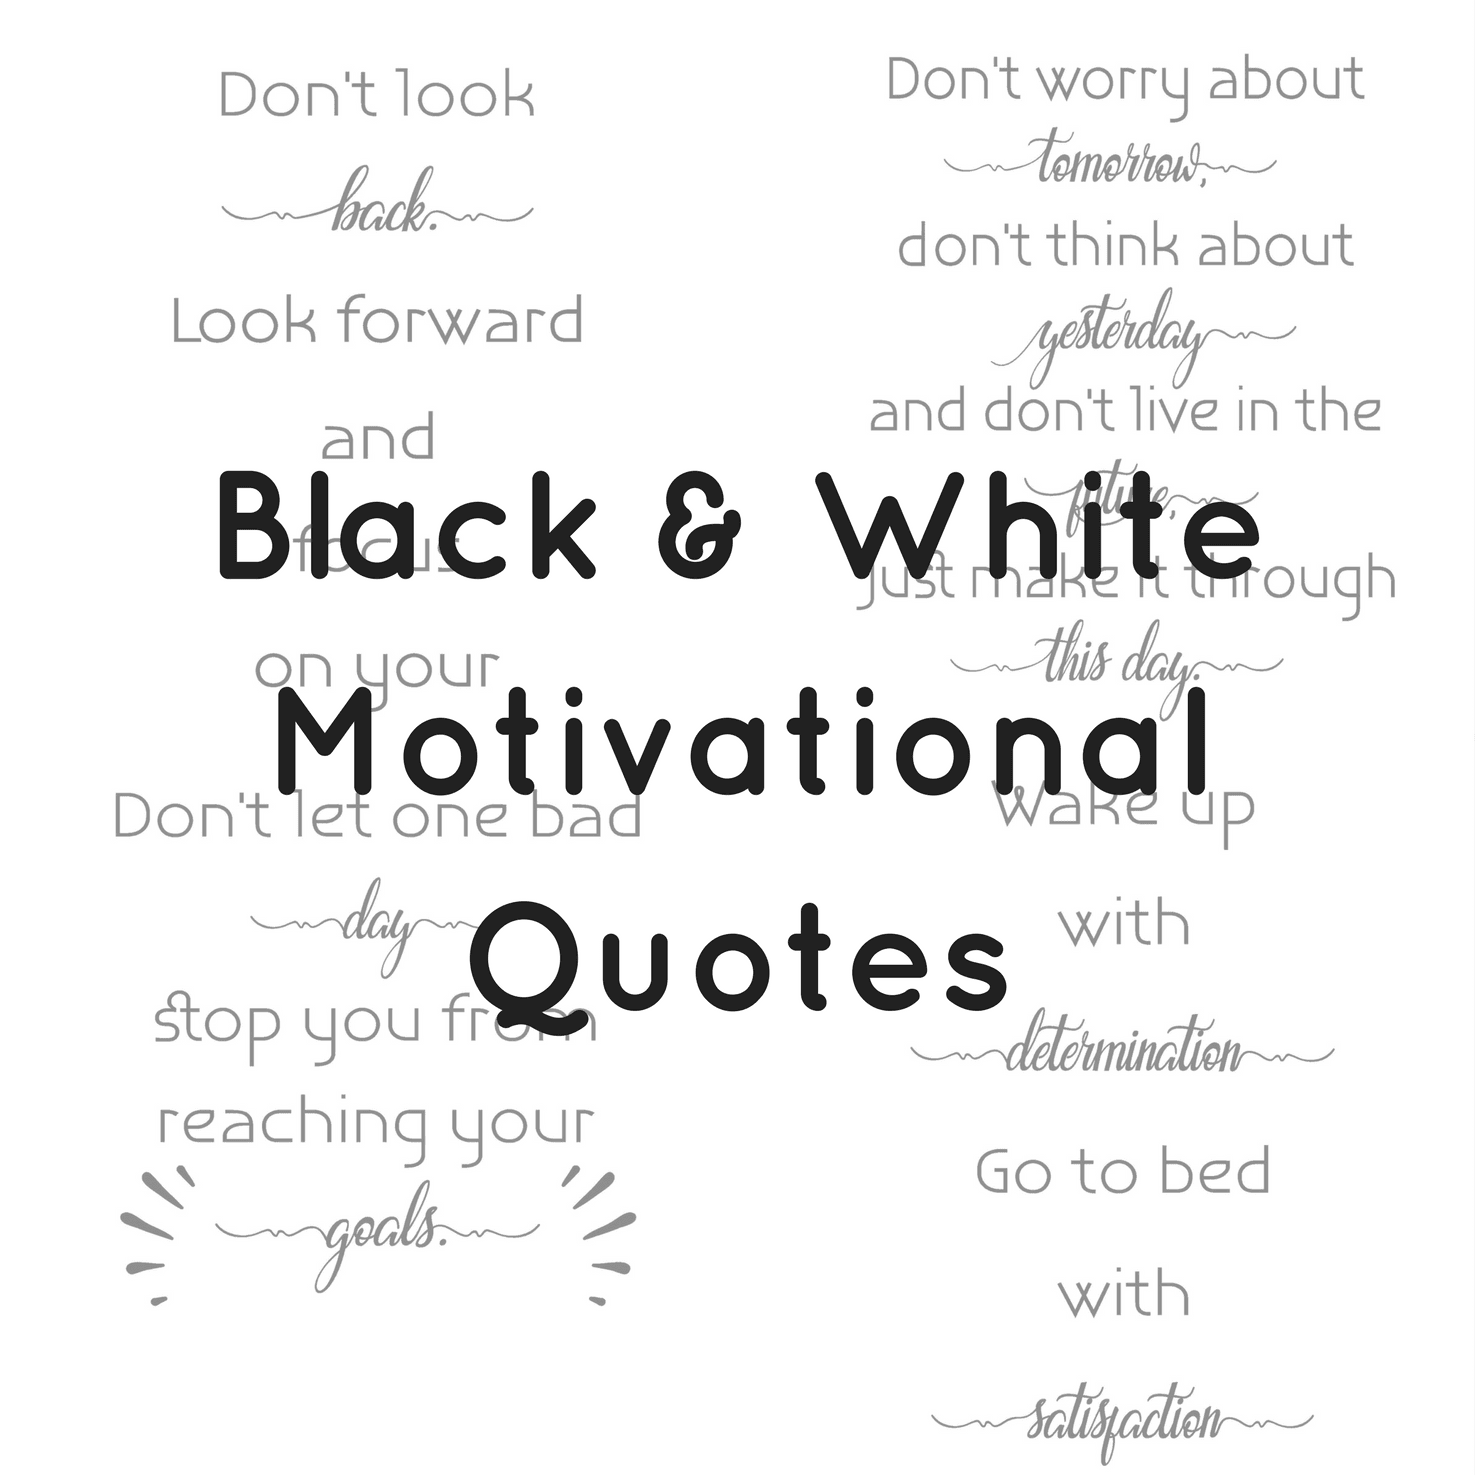 These free motivational quotes are intended to give you encouragement so you succeed in your dreams. Motivational quotes can give you strength and make a positive impact on your life. Download now and be inspired. For more freebies, visit www.trueblissdesigns.com.